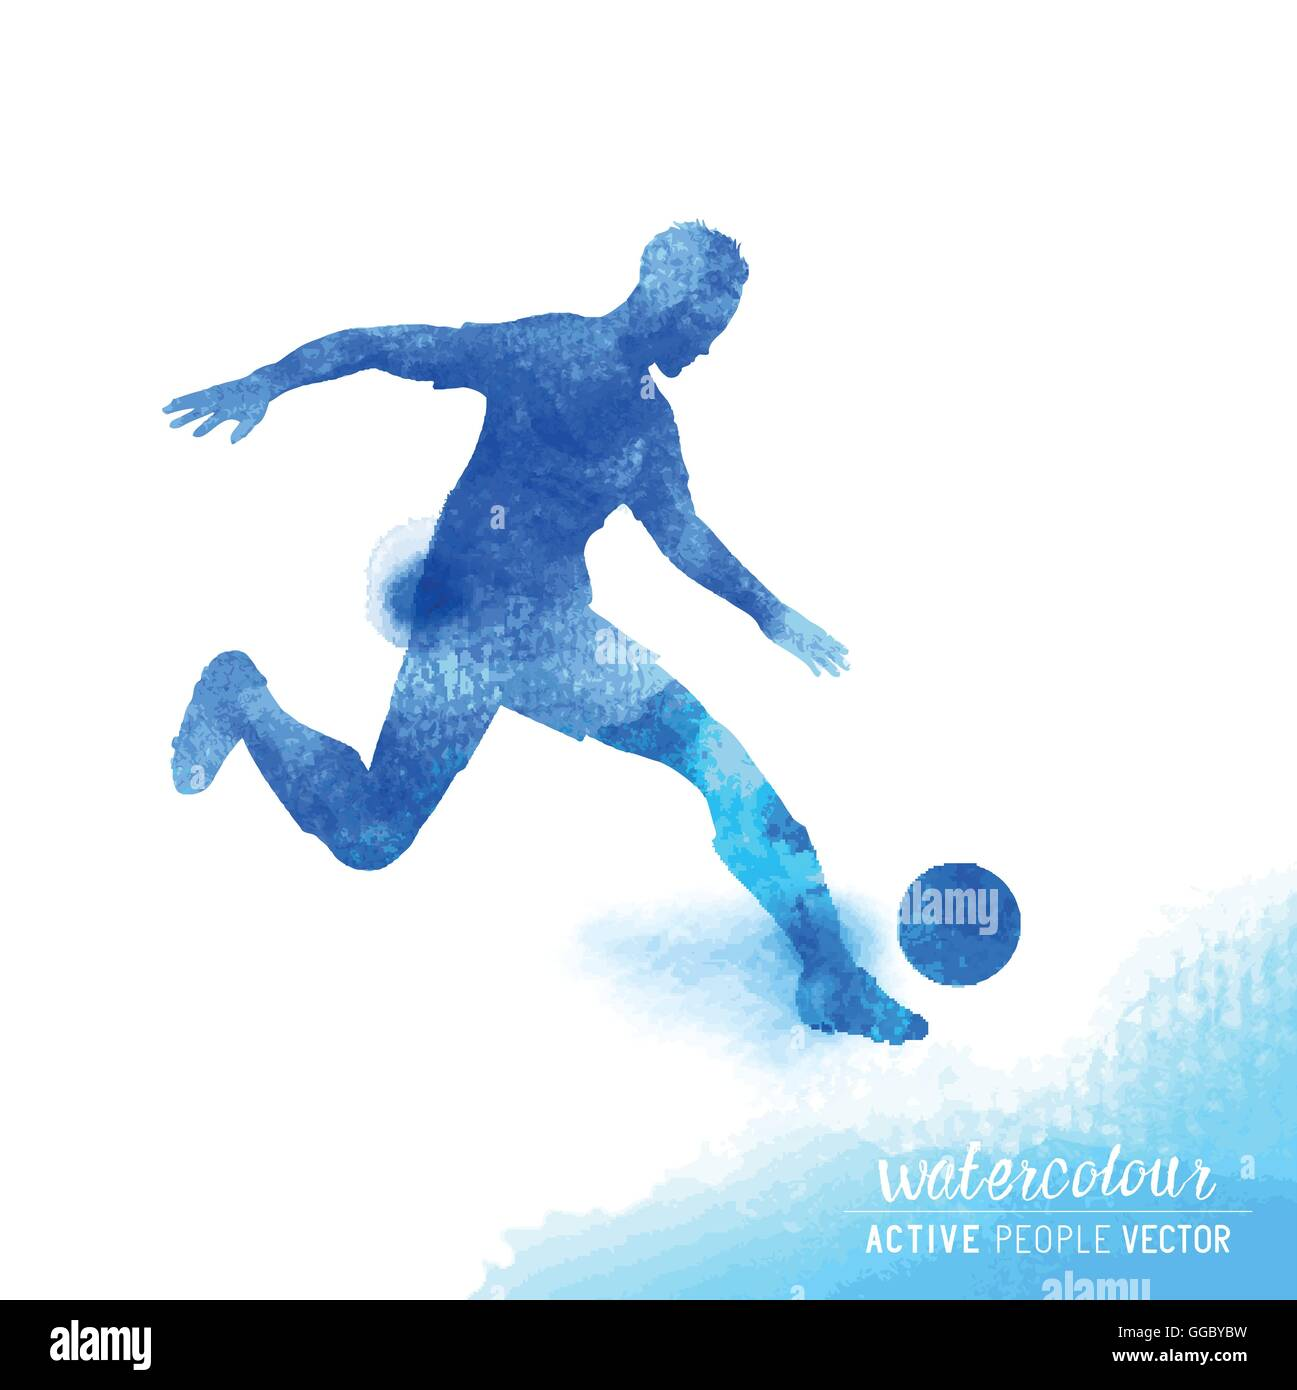 Professional Football player about to strike the ball - watercolour vector illustration. - Stock Image